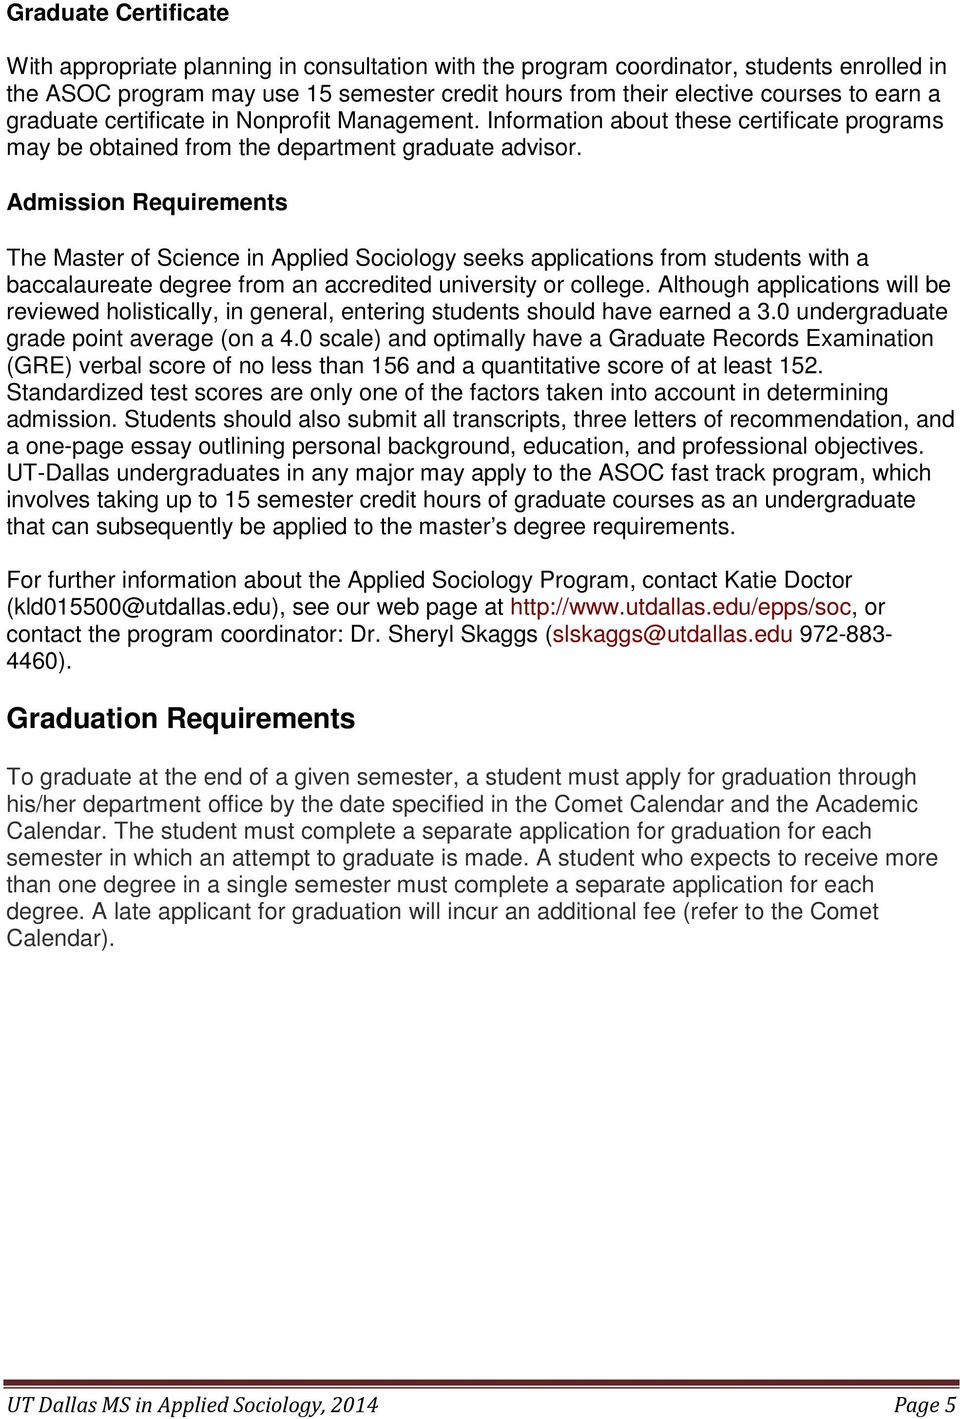 Admission Requirements The Master of Science in Applied Sociology seeks applications from students with a baccalaureate degree from an accredited university or college.